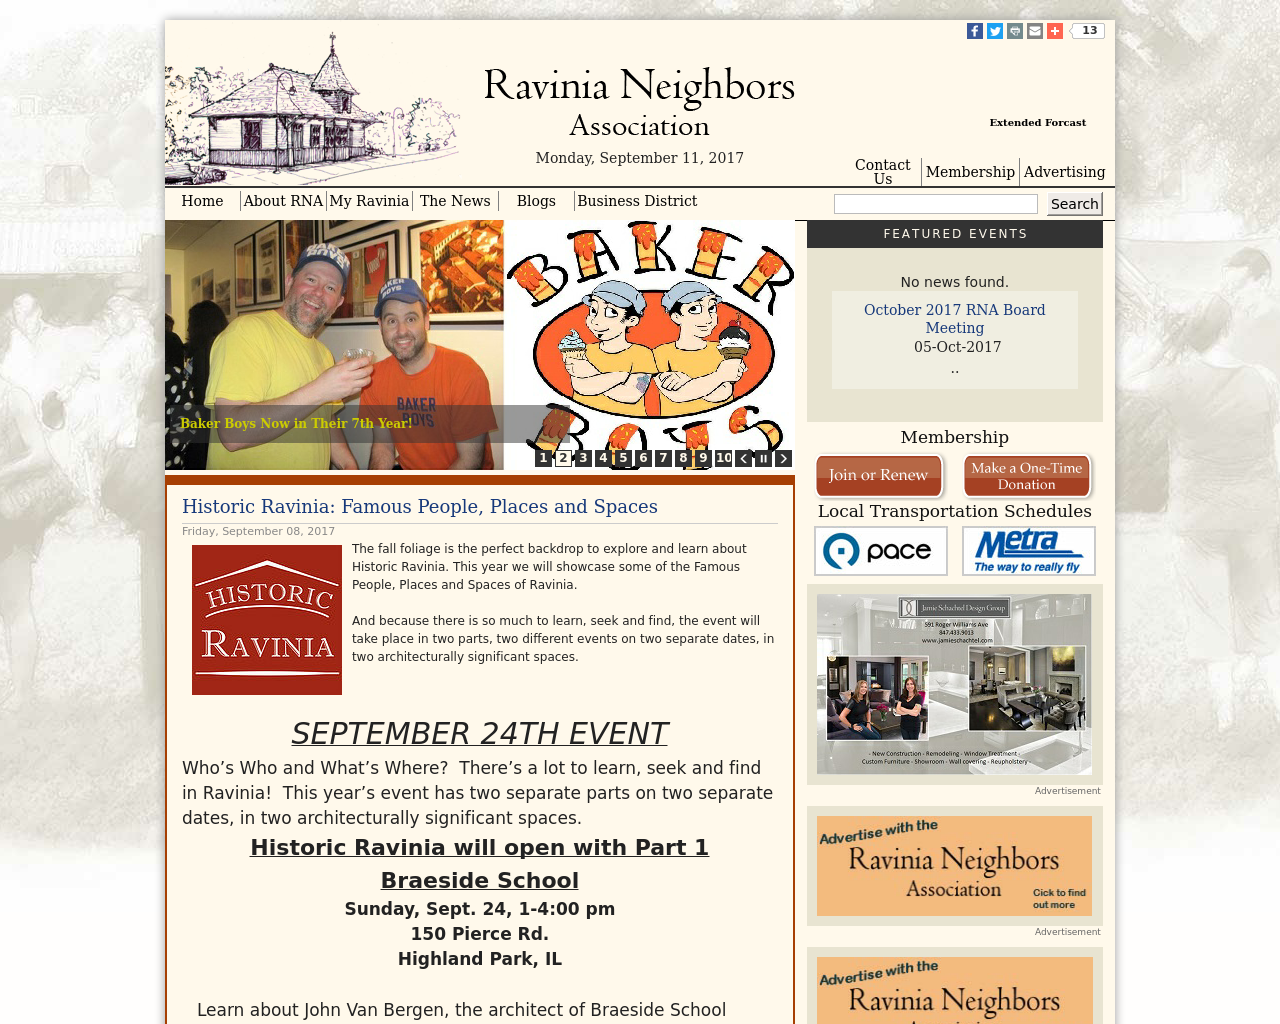 Ravinia-Neighbors-Association-Advertising-Reviews-Pricing